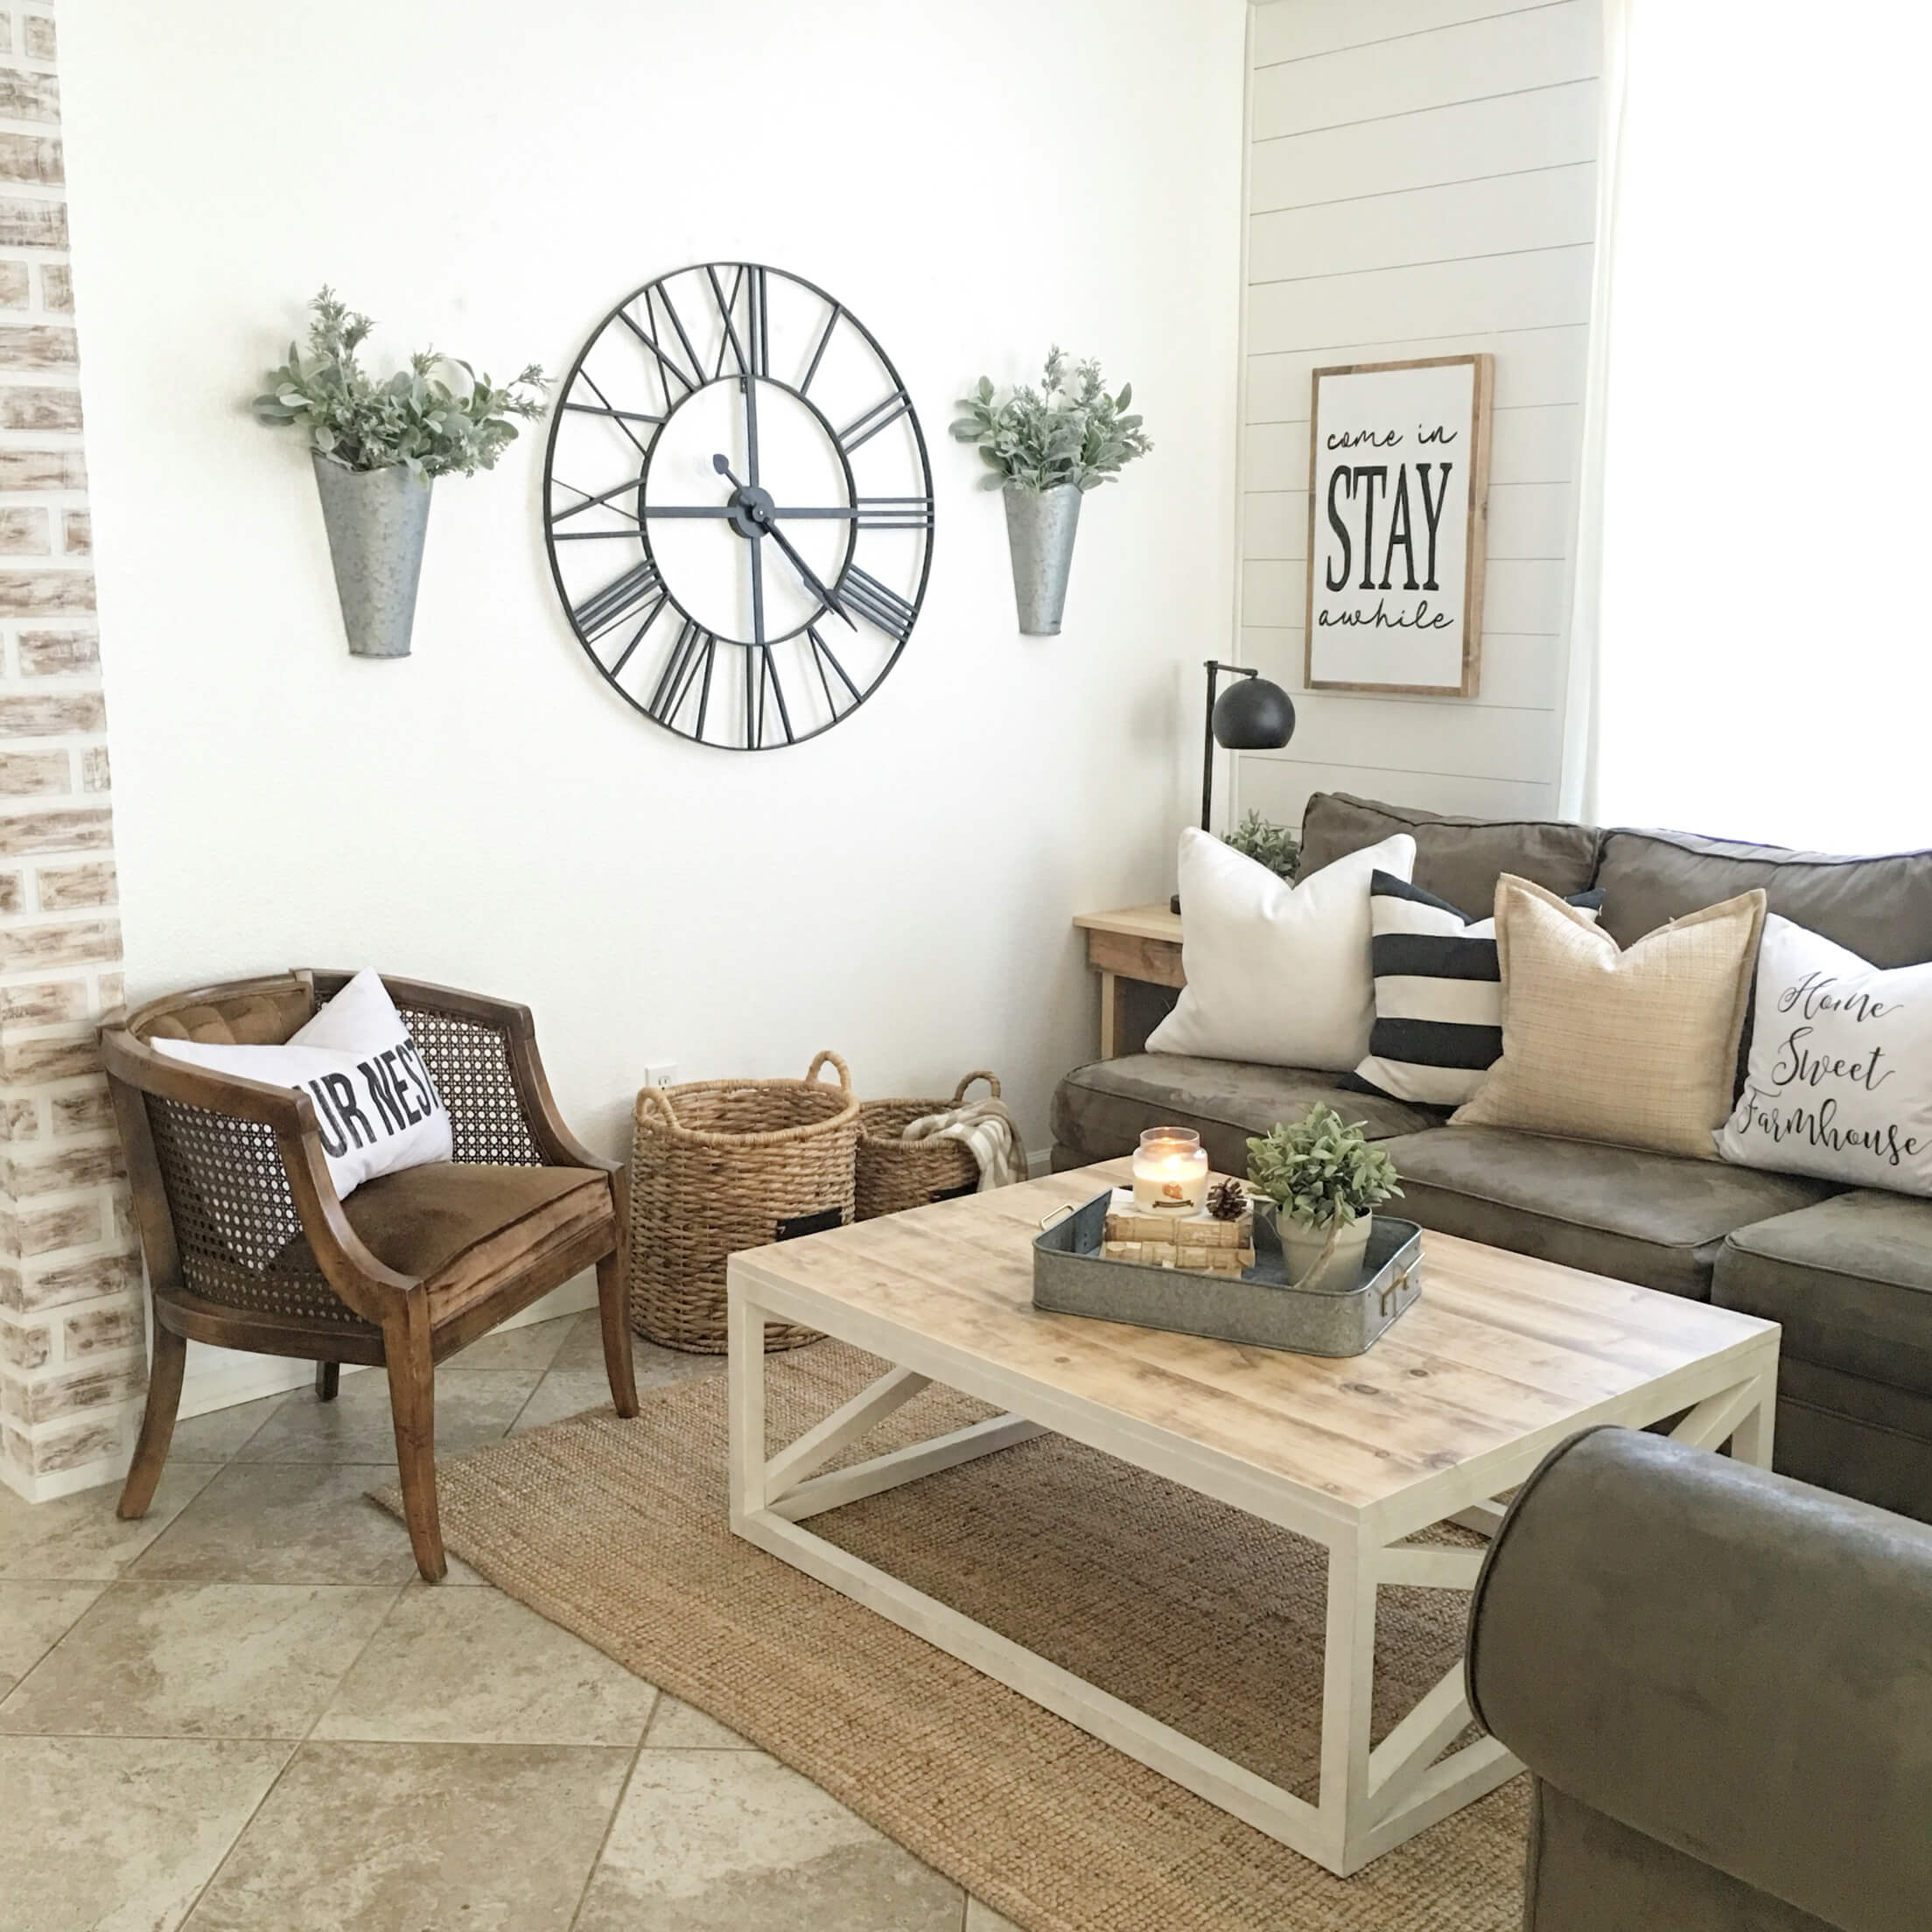 Superb Farmhouse Style Small Living Room Decor Idea